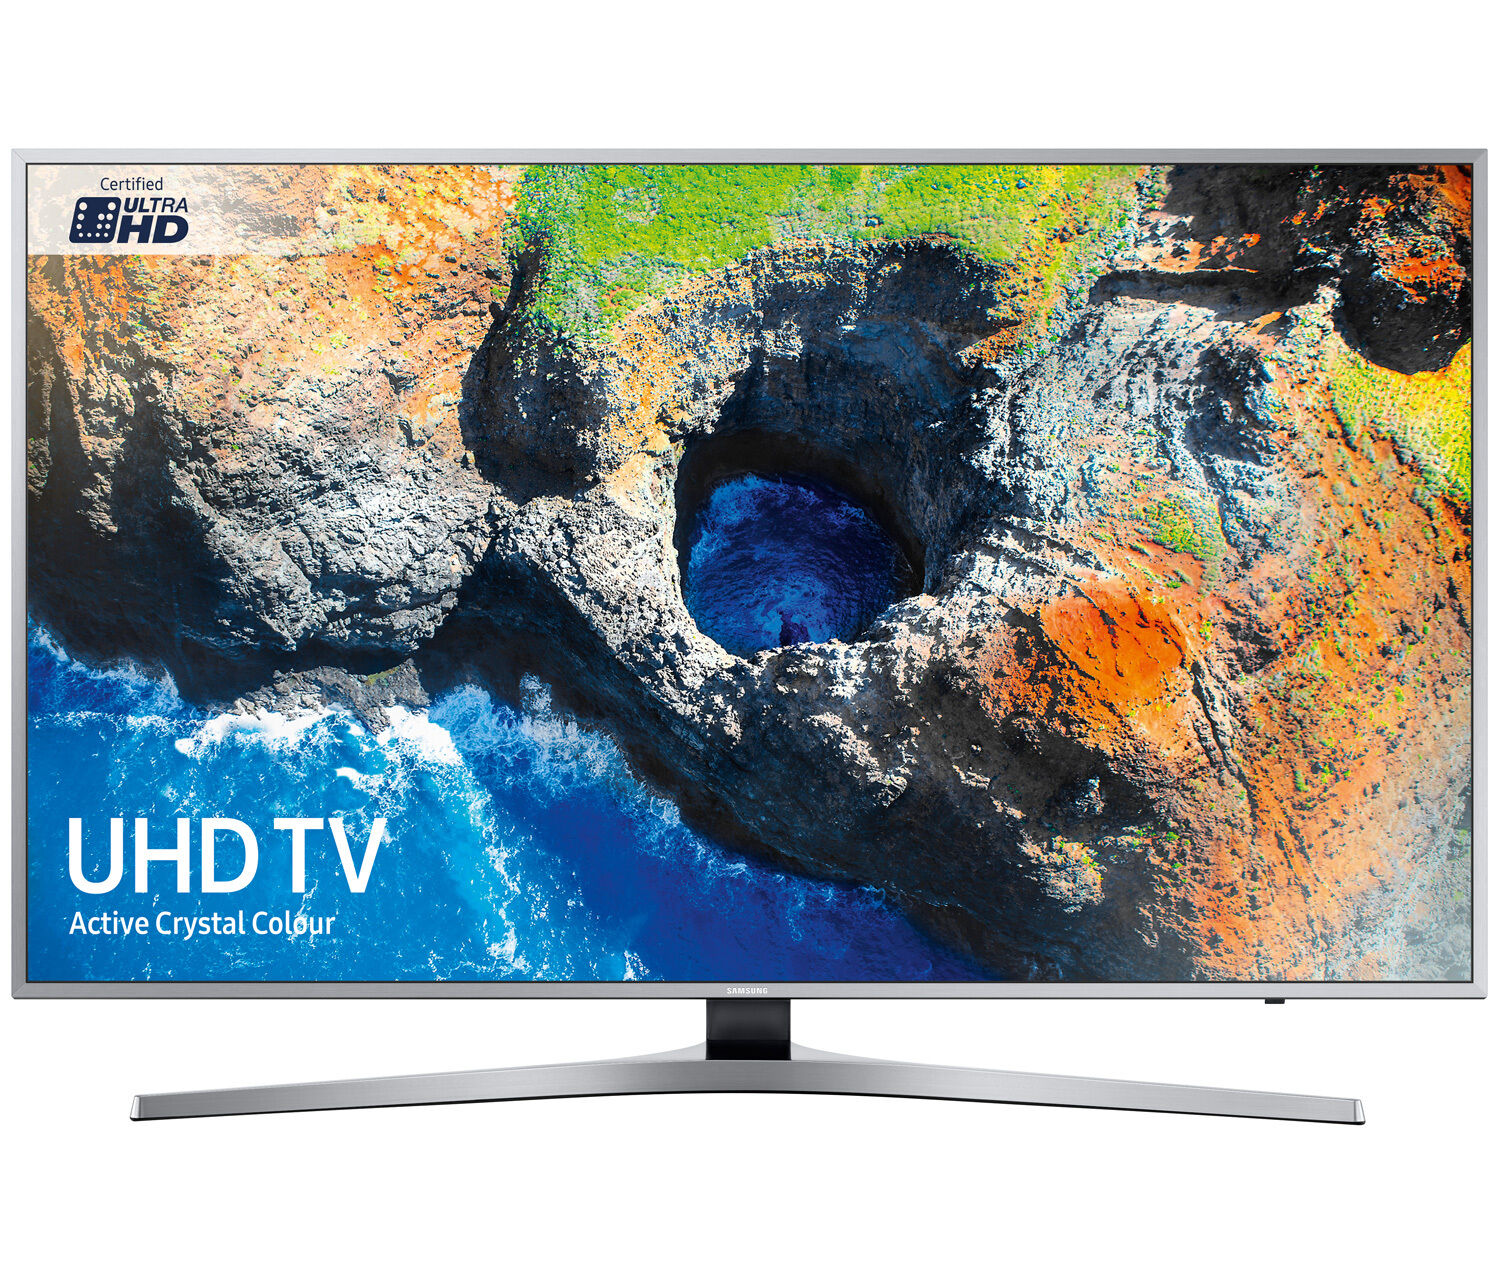 SAMSUNG UE50MU6120 50 inch 4K Ultra HD Smart HDR LED TV TVPlus (March Masdness)